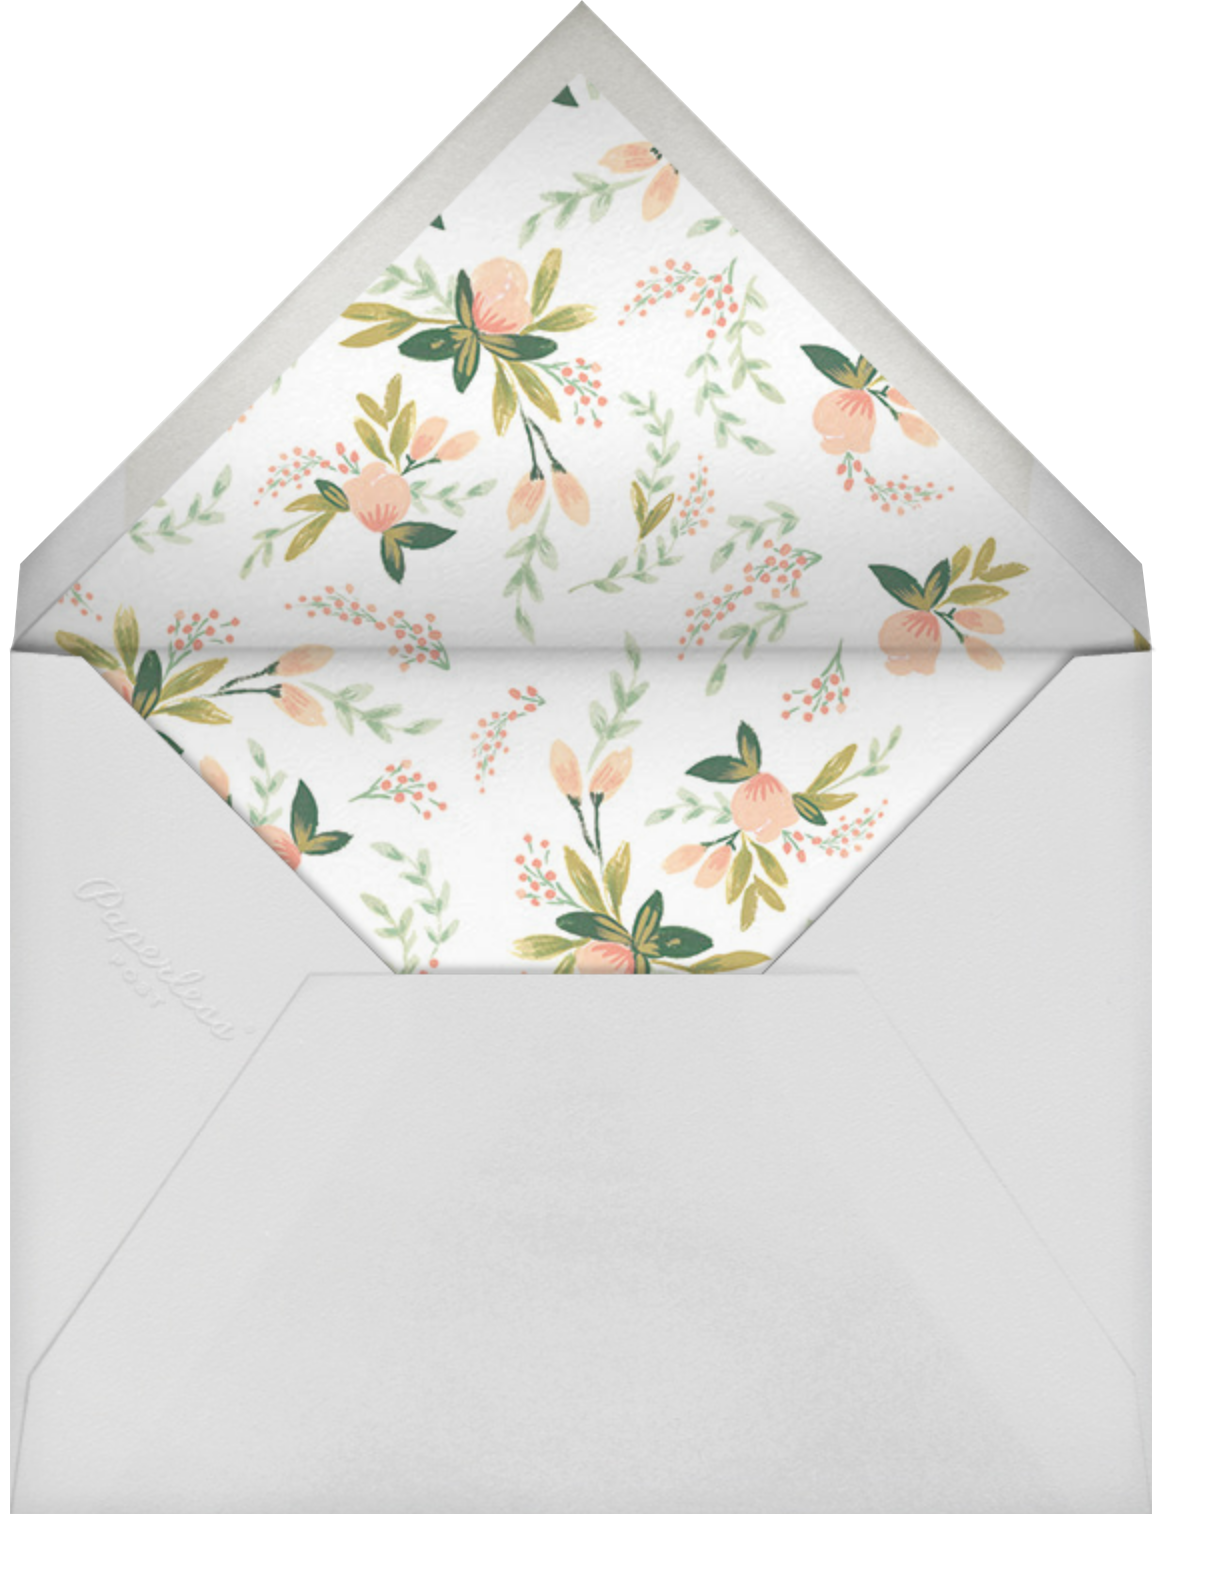 Peach Posies - Rifle Paper Co. - Spring Favorites - envelope back